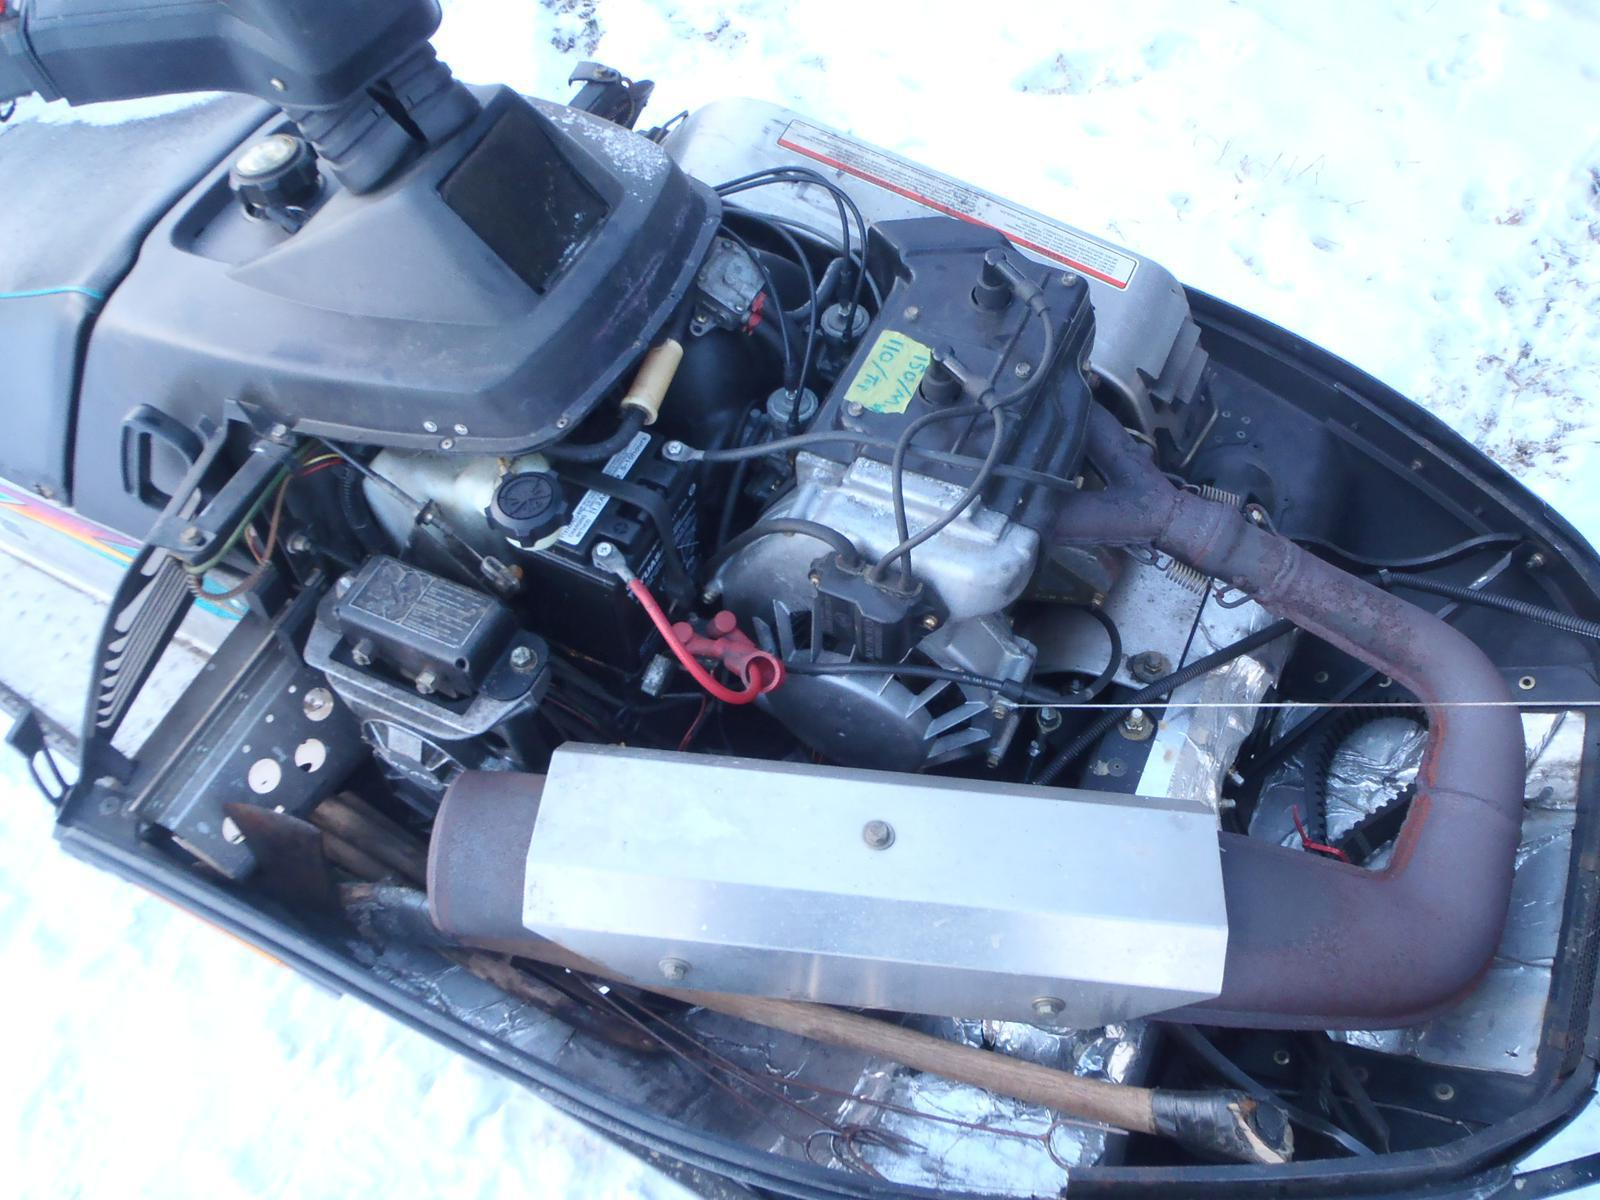 95 2008 Polaris 600 Shift 2009 Indy Rmk 155 Wiring Diagram For Sale In Sedgewick Ab Cross Country